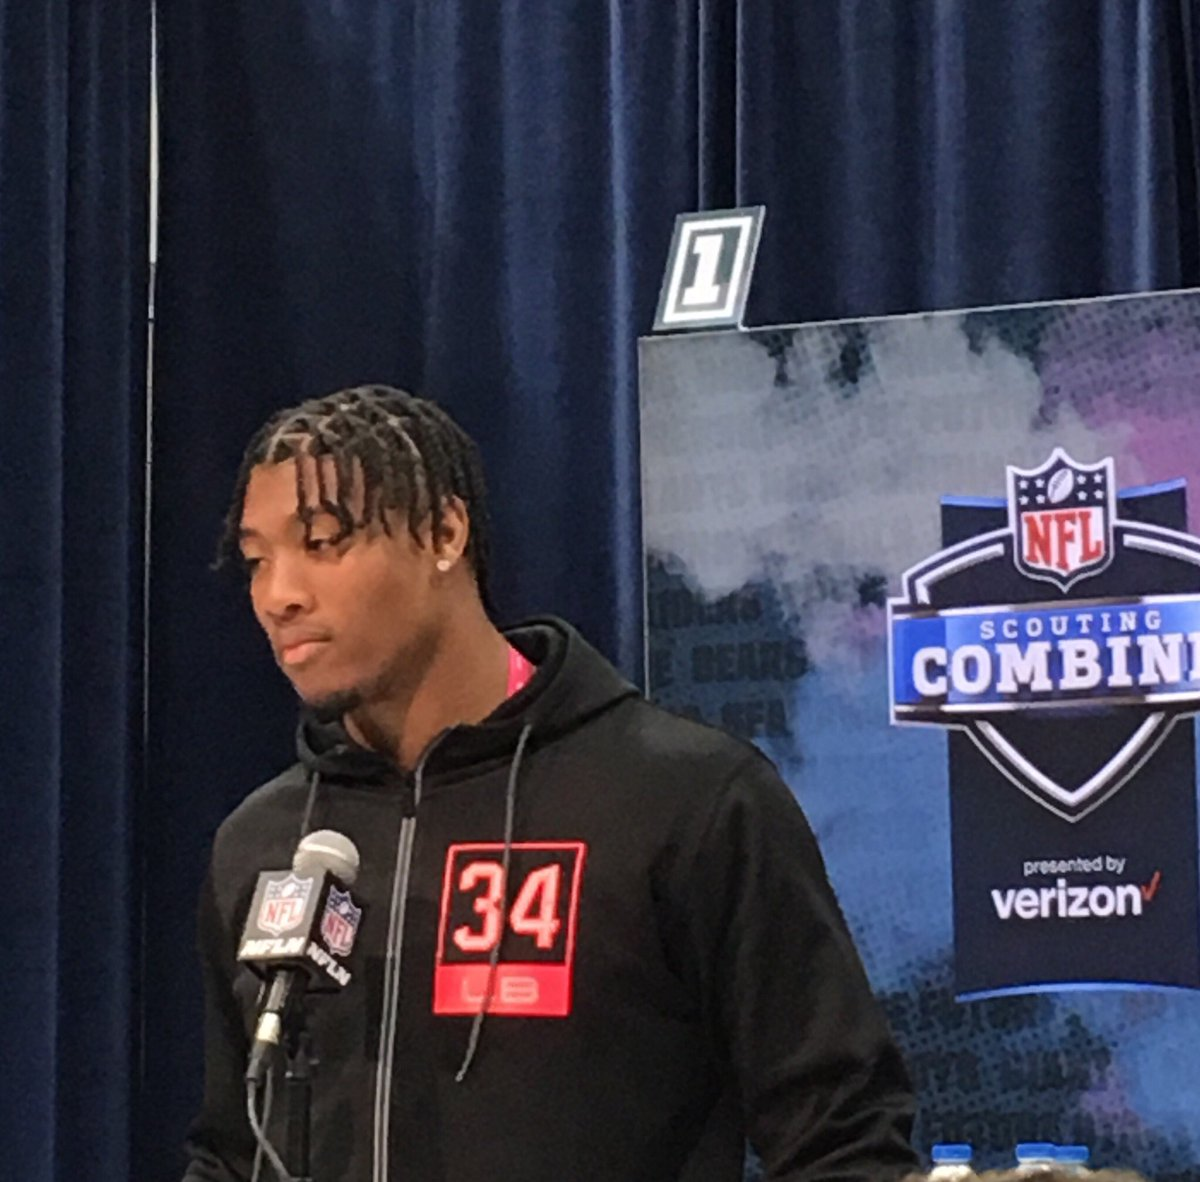 .@ClemsonFB's Isaiah Simmons says he tries to incorporate pieces from the games of @VonMiller, @jalenramsey and @Mathieu_Era when he plays.  He's one of the most versatile prospects for a reason.  #NFLCombine<br>http://pic.twitter.com/RVfezGZSuu